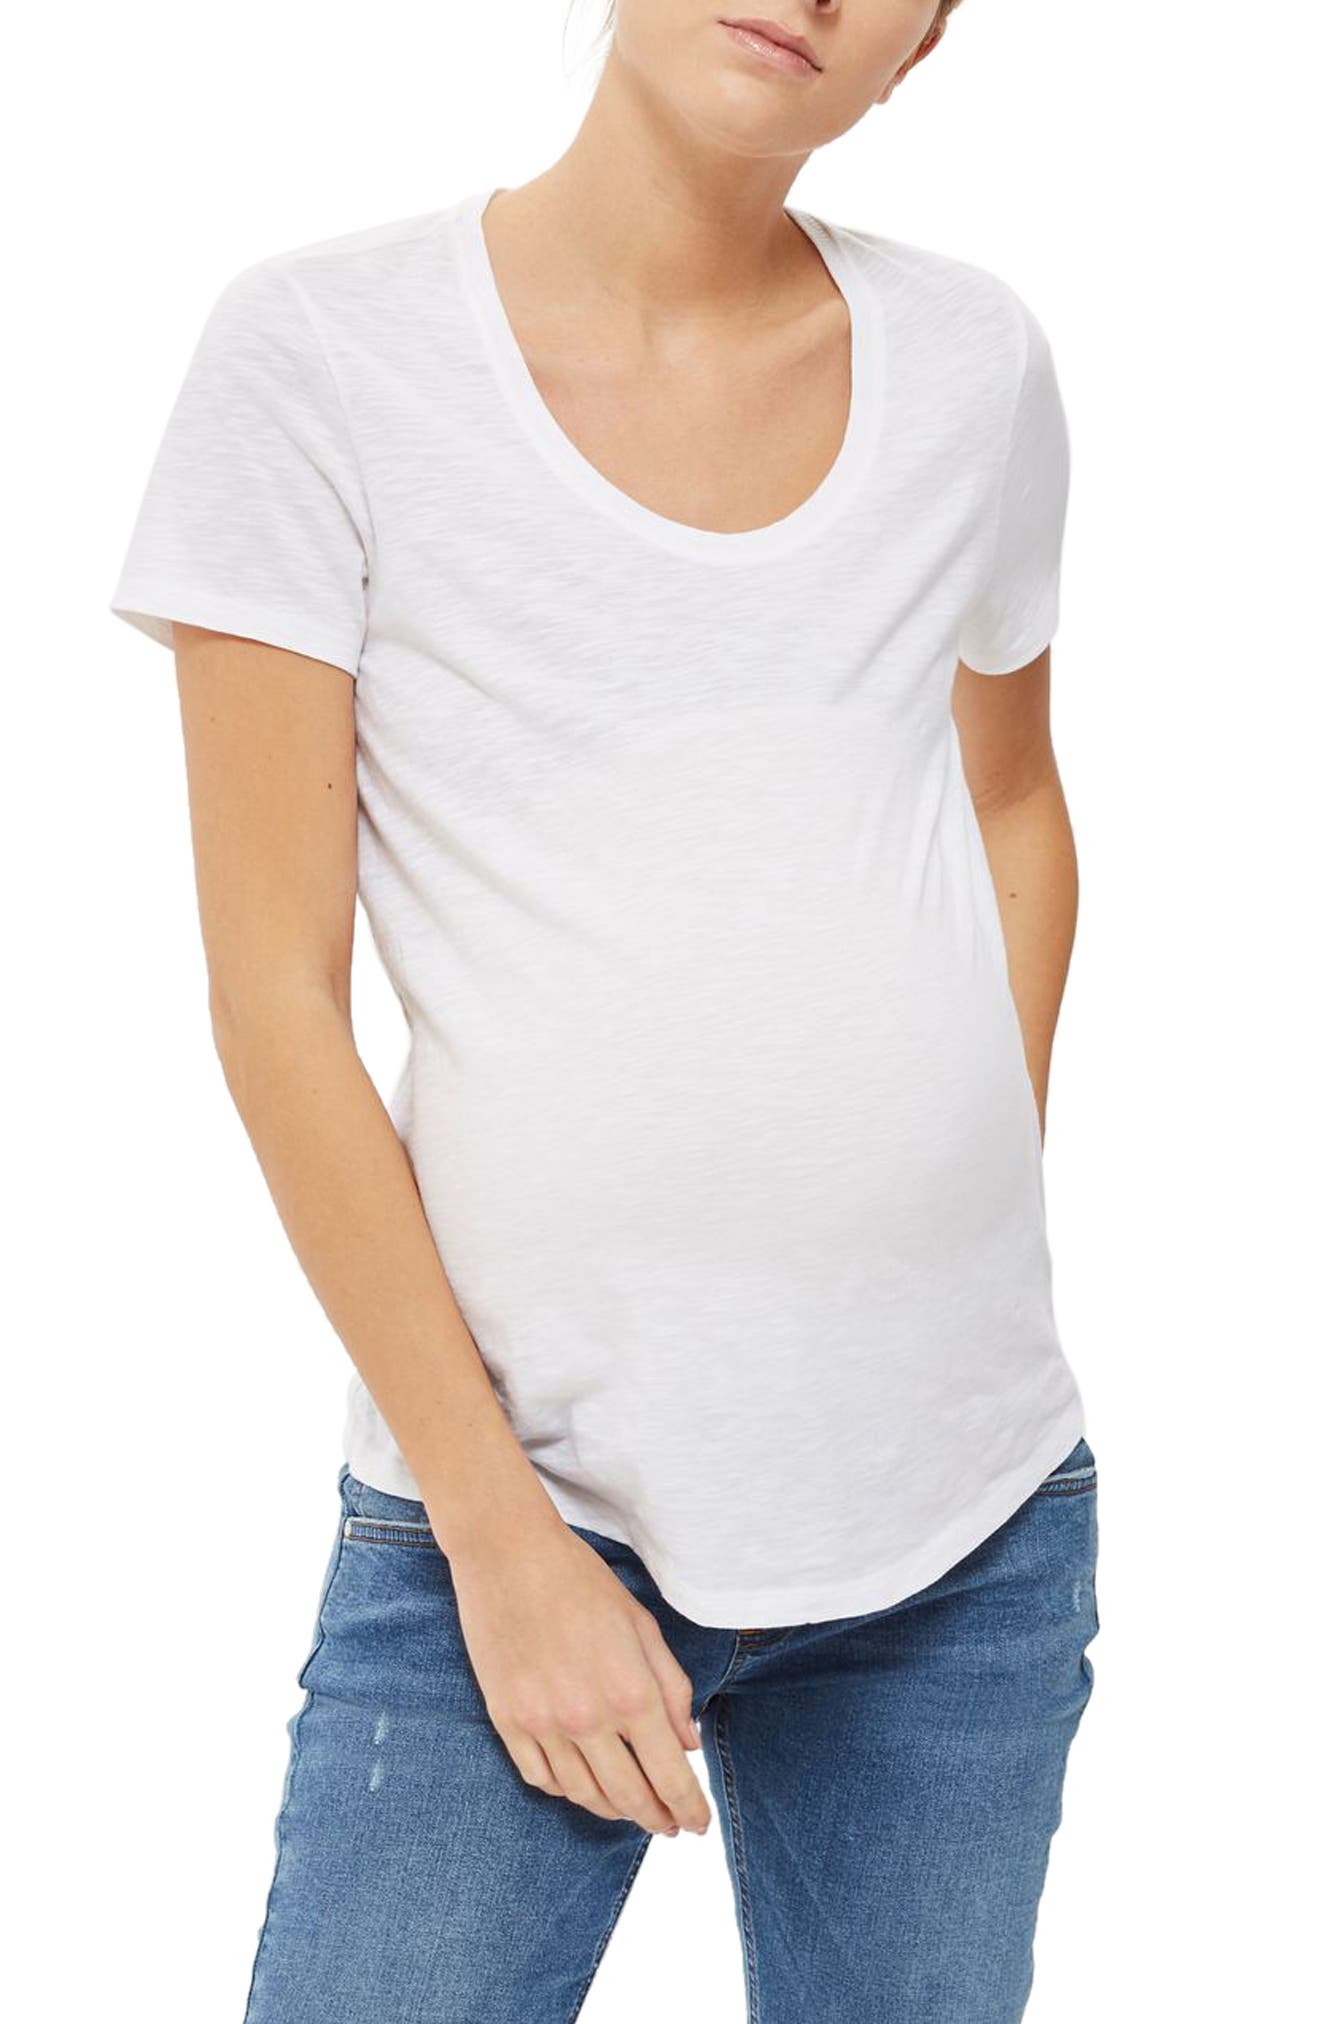 Topshop Scooped Neck Maternity Tee